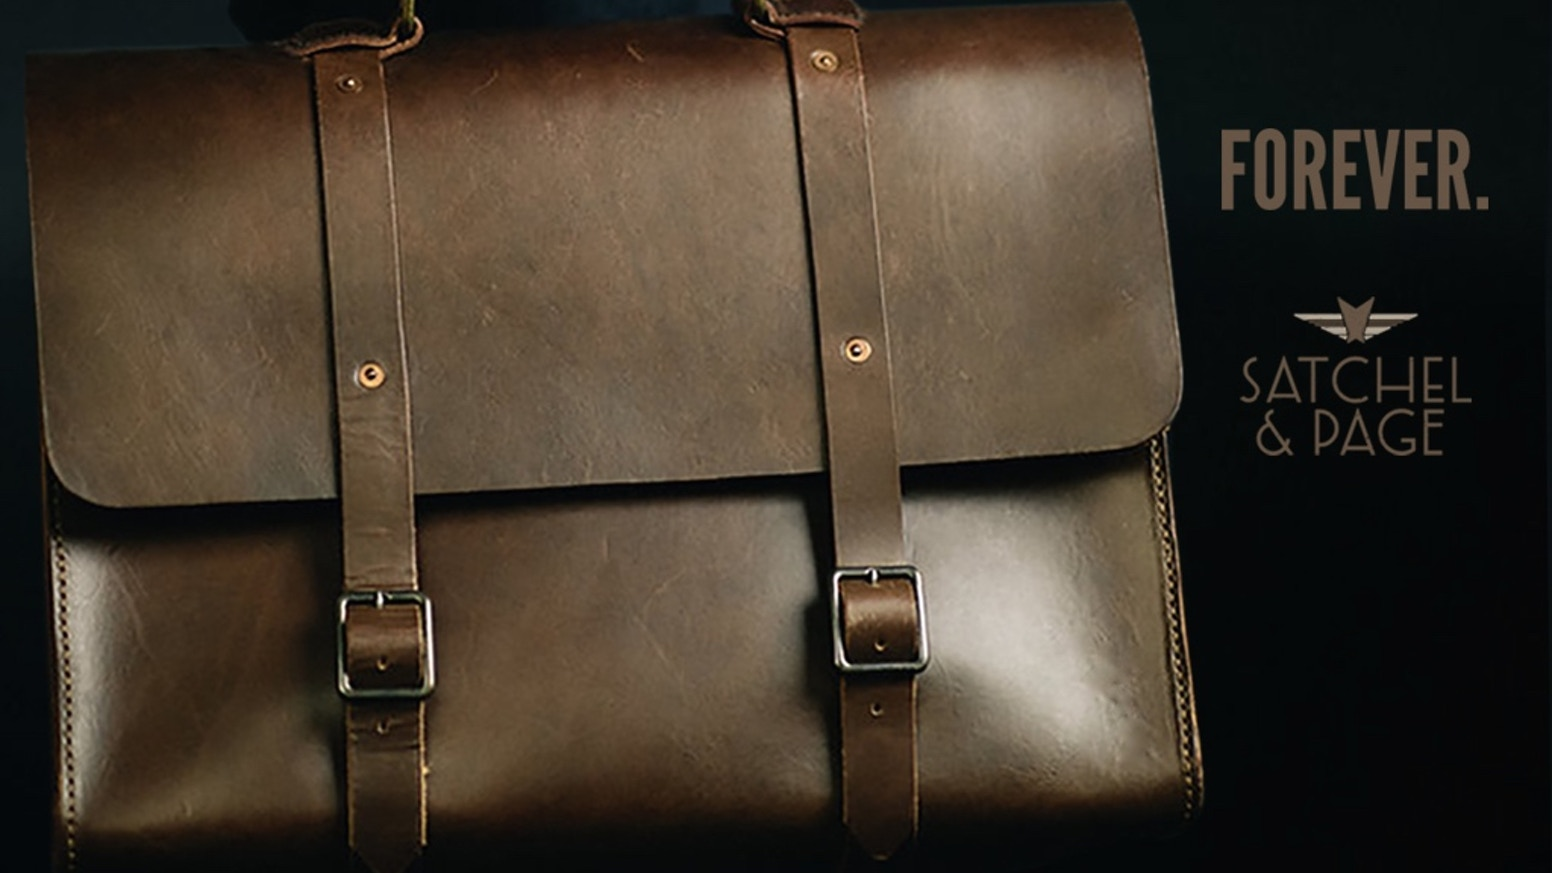 A leather bag collection inspired by my Great Grandfather's Suitcase from 1914. Modern, functional artifacts. Guaranteed for life.